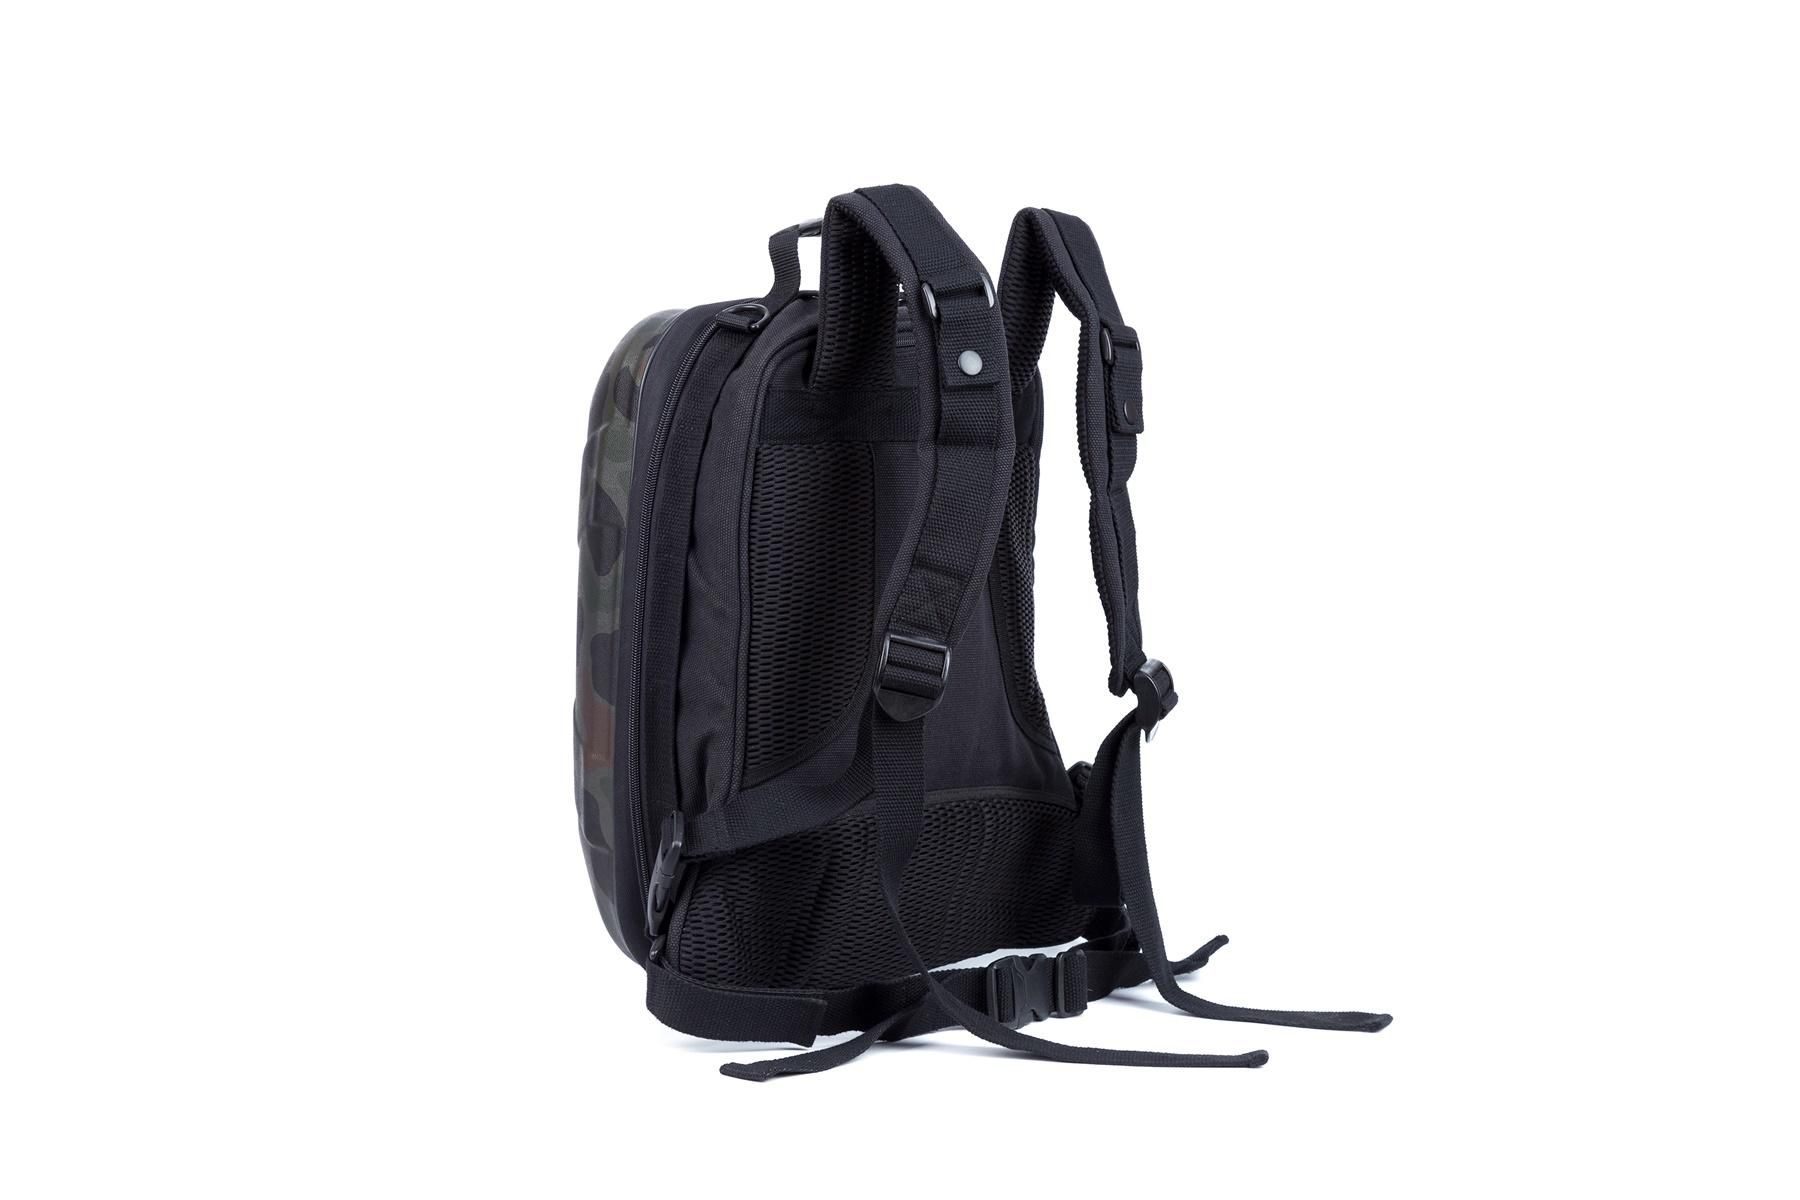 Military backpack hard shell with zipper closure